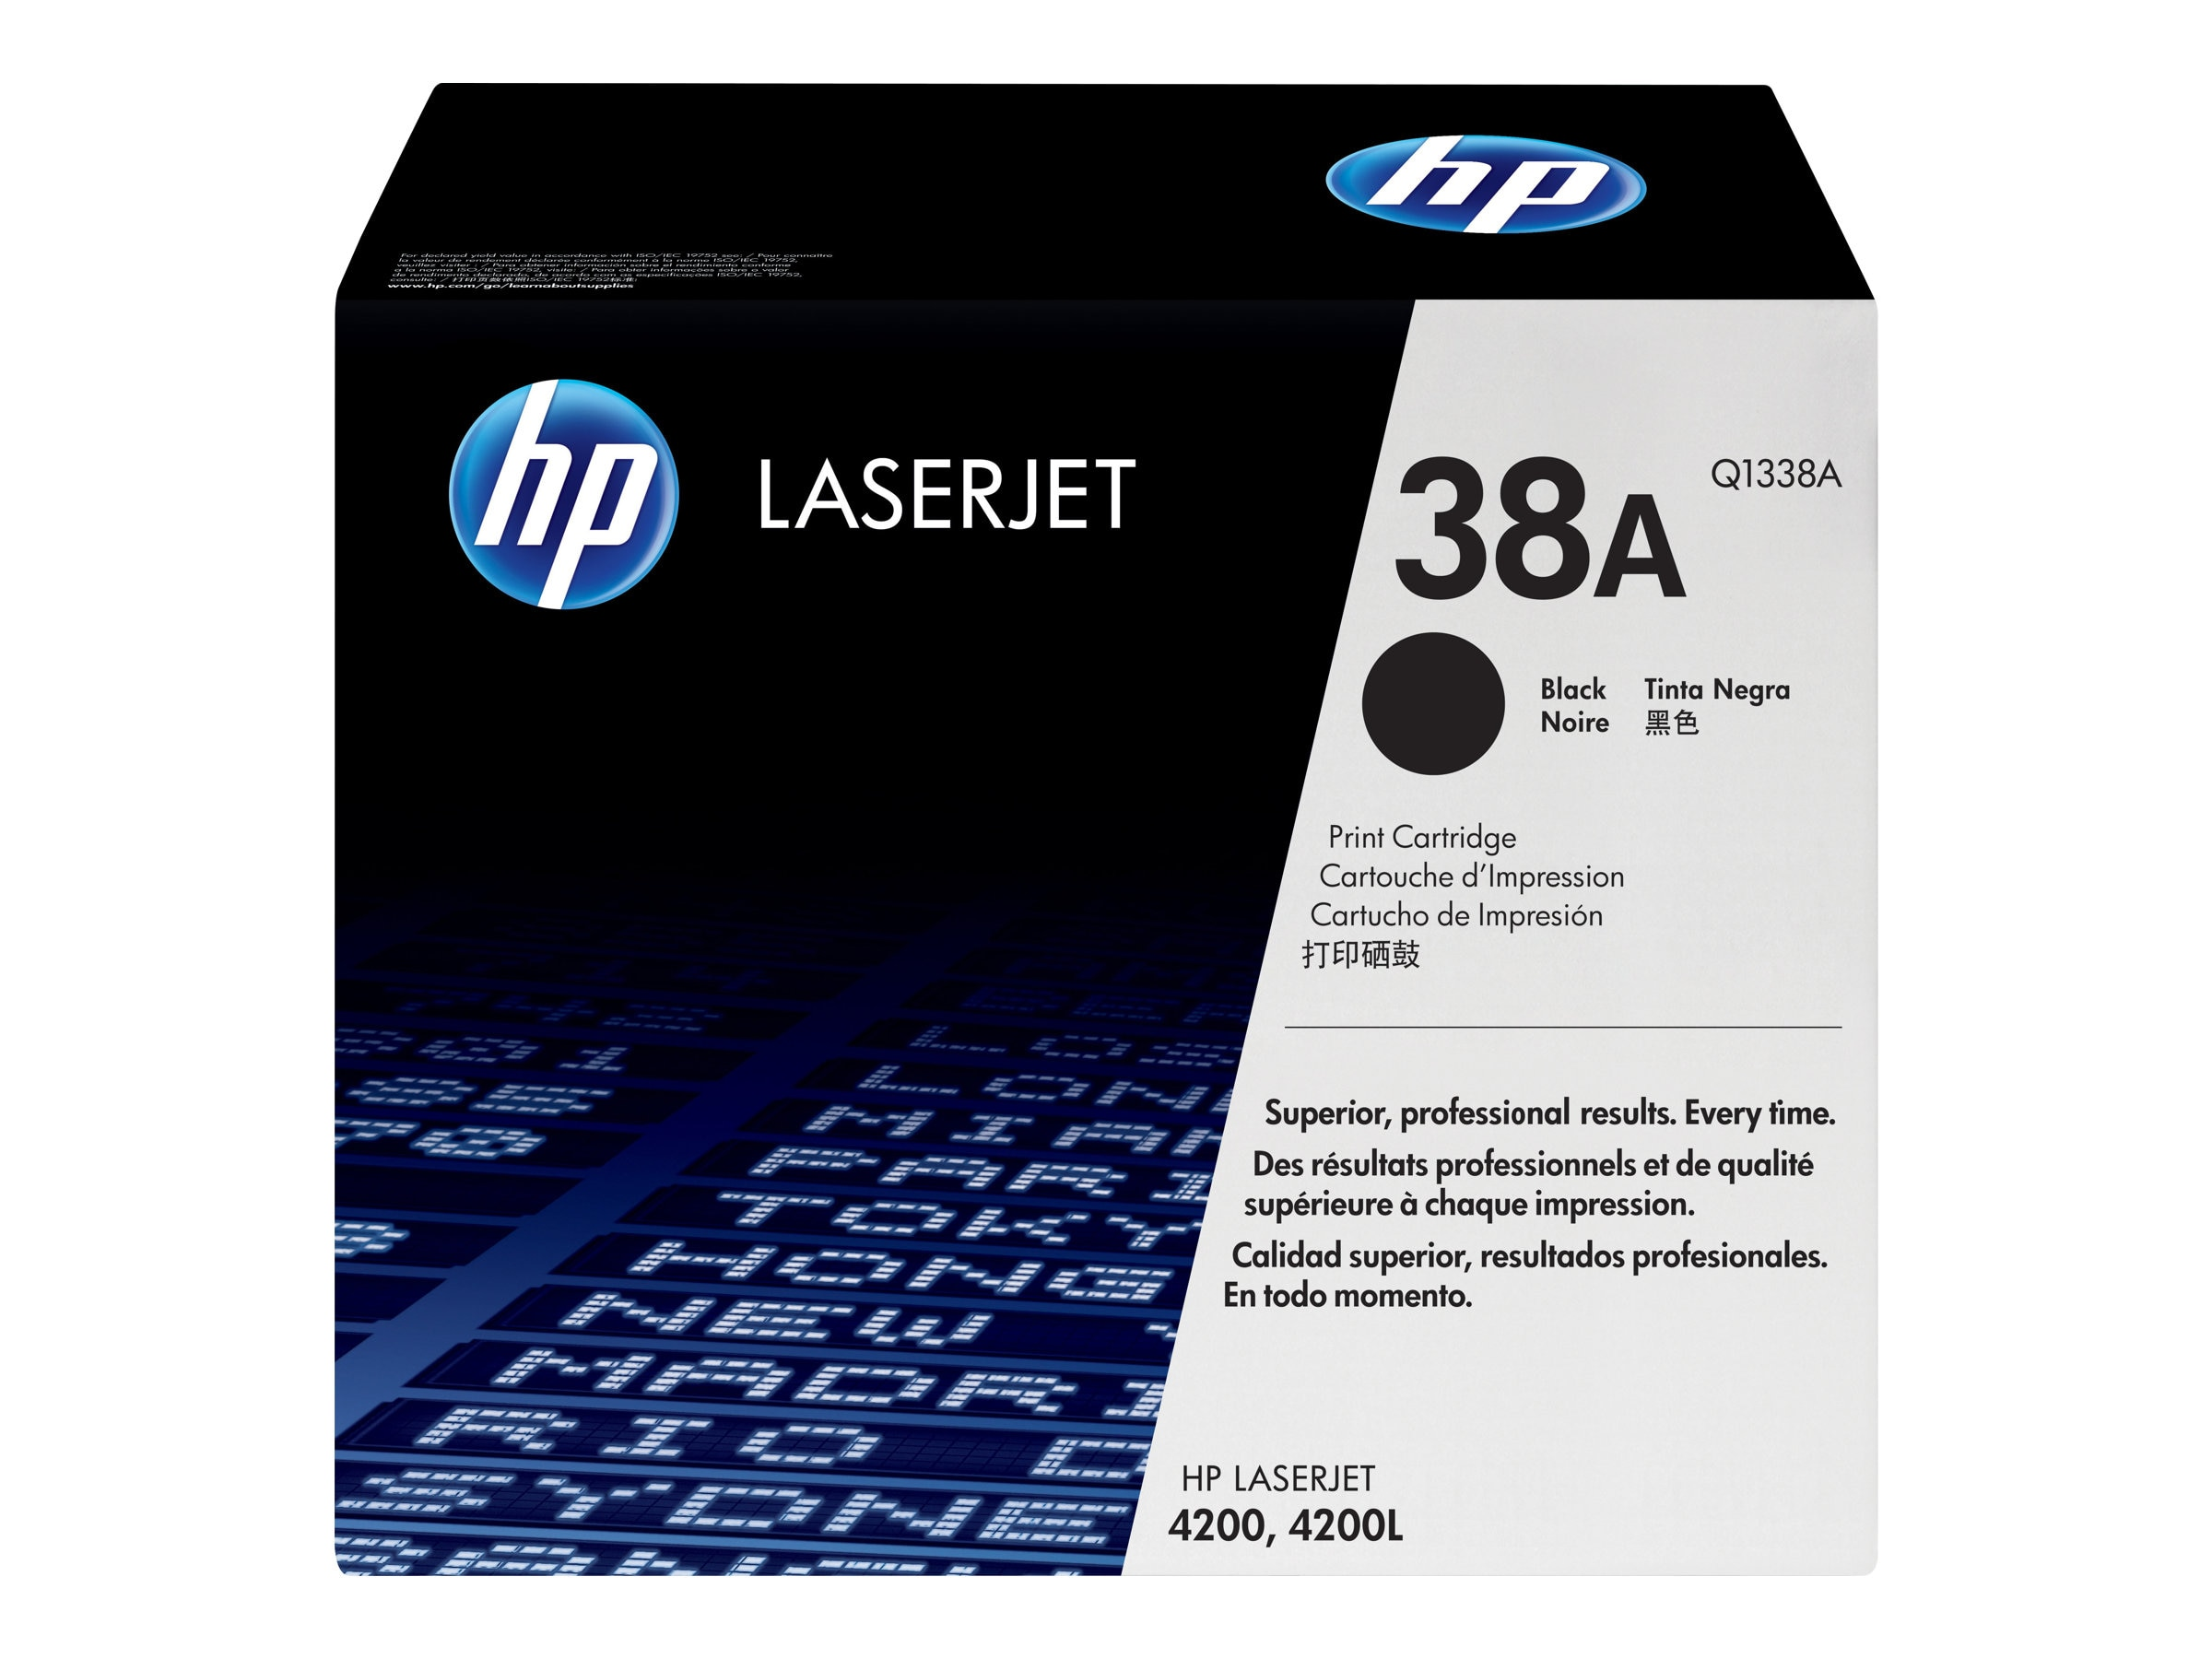 HP 38A (Q1338A) Black Original LaserJet Toner Cartridge for HP LaserJet 4200 Series